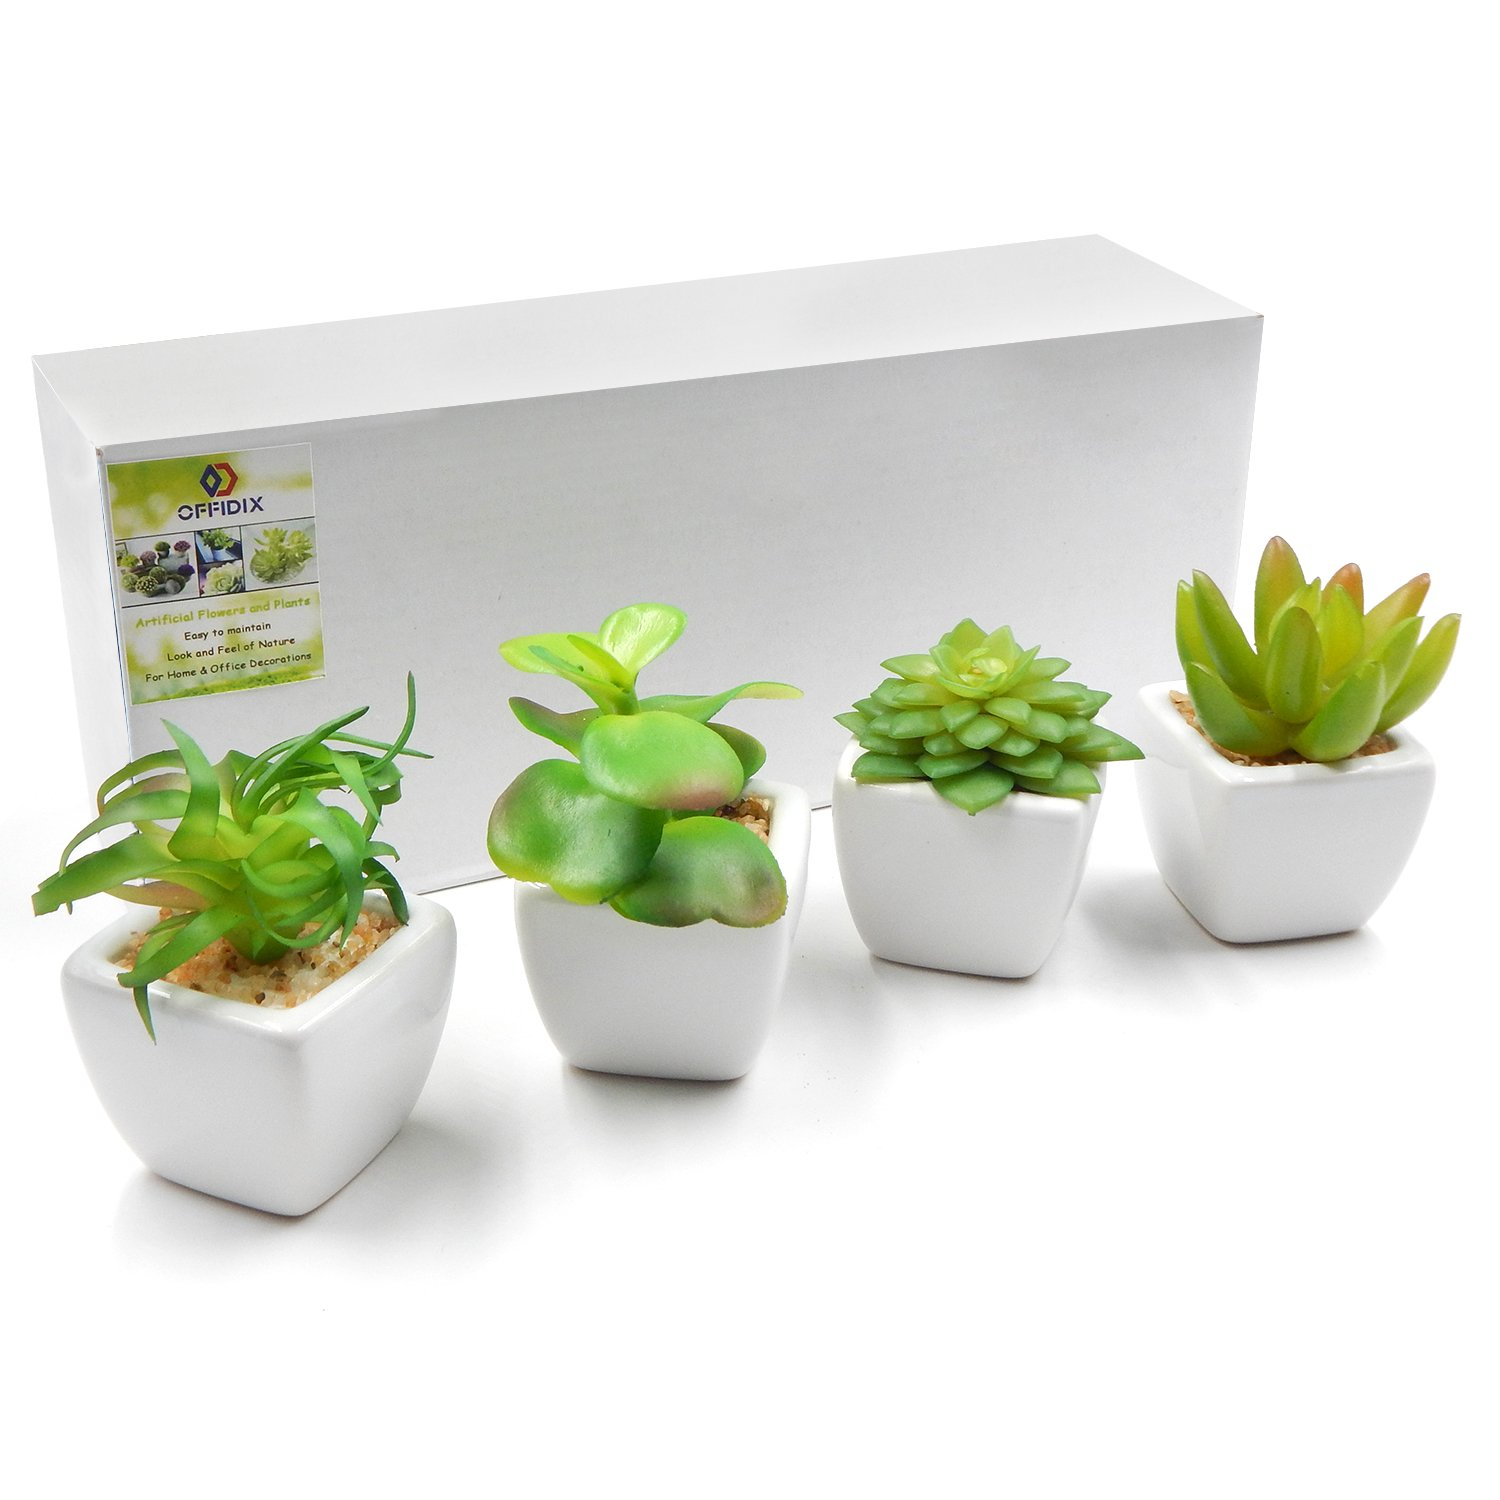 Office pot plants Photoshop Cut Out Offidix Artificial Succulent Plants For Home Office Decoration With Ceramic Pot 4pcsset Indoor Fake Green Potted Plant Succulent Plants 2018 New Year Skyland Gardening Amazoncom Offidix Artificial Succulent Plants For Home Office